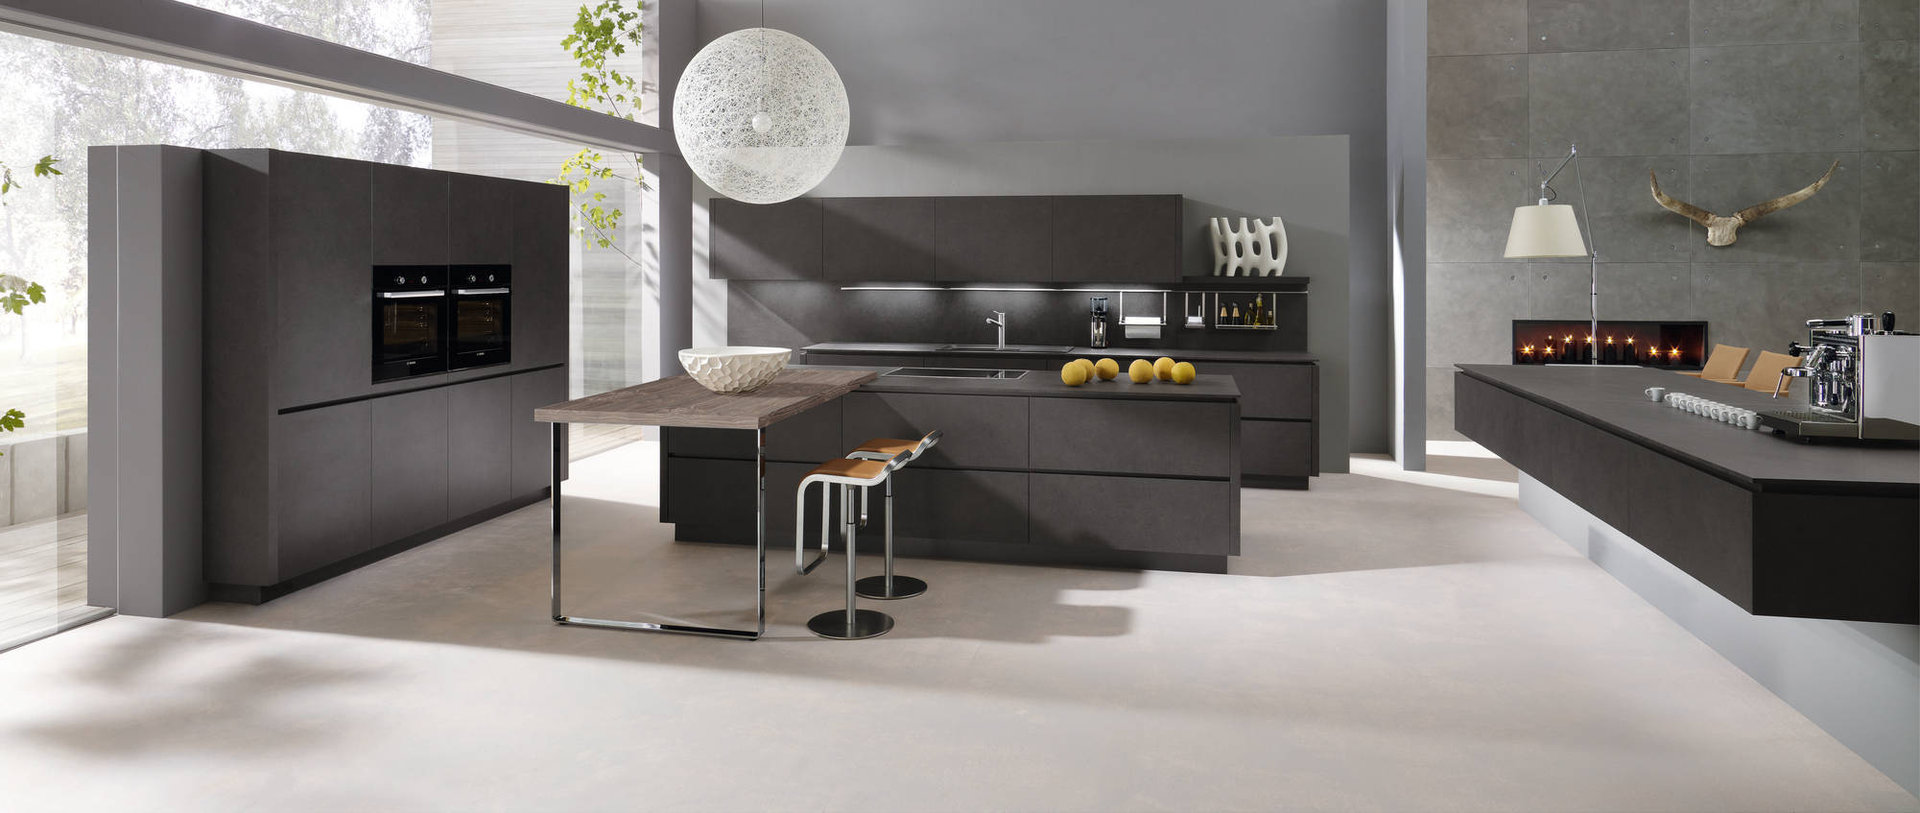 moderne k chen von alno die kleine k chenstube. Black Bedroom Furniture Sets. Home Design Ideas